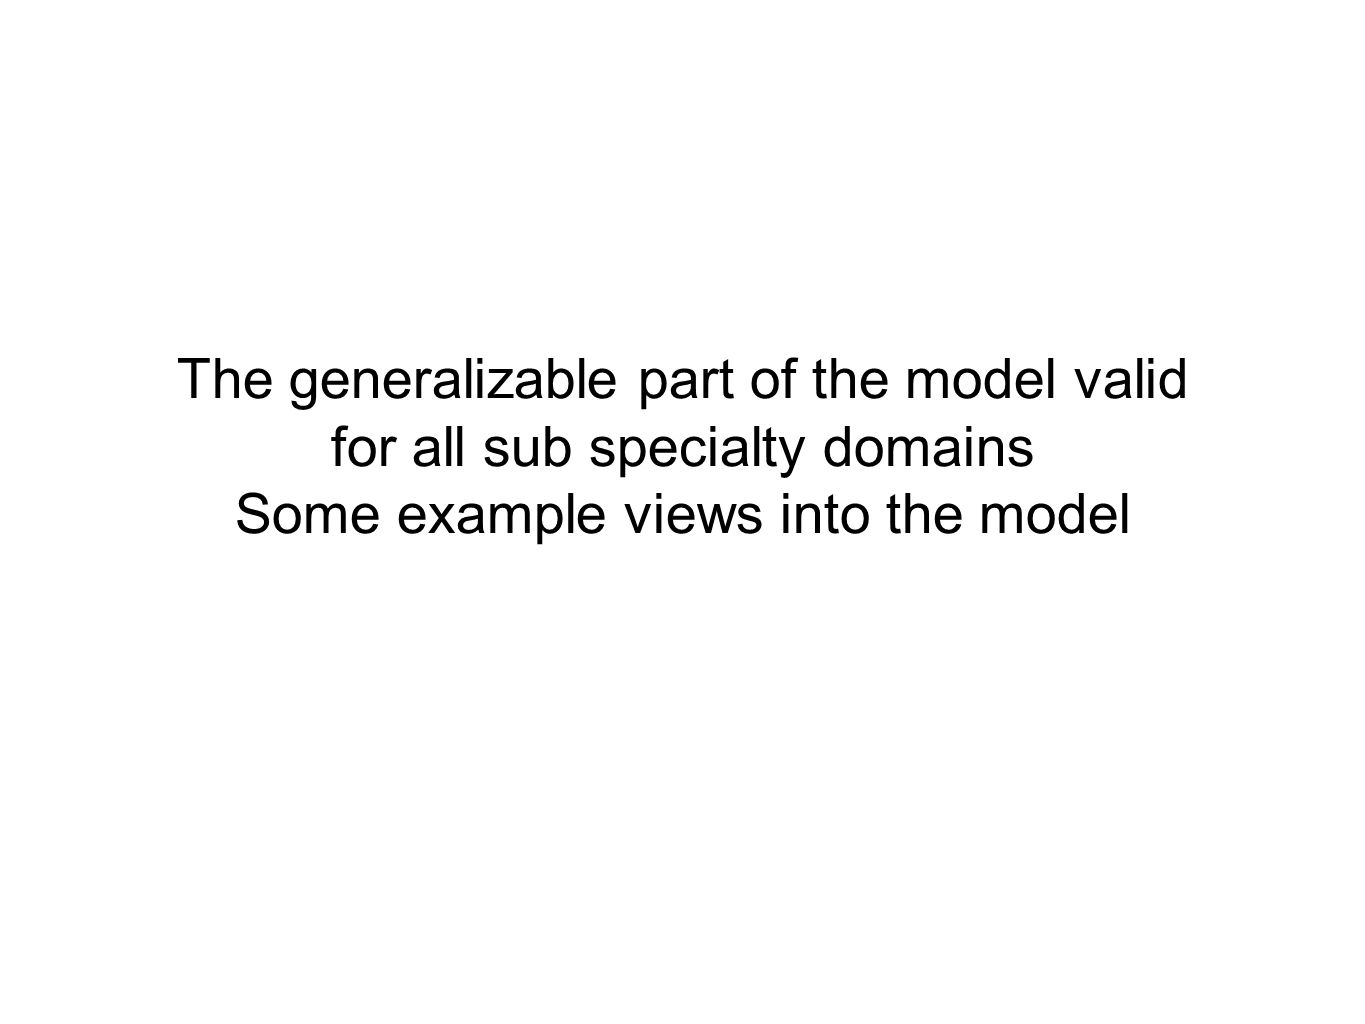 The generalizable part of the model valid for all sub specialty domains Some example views into the model